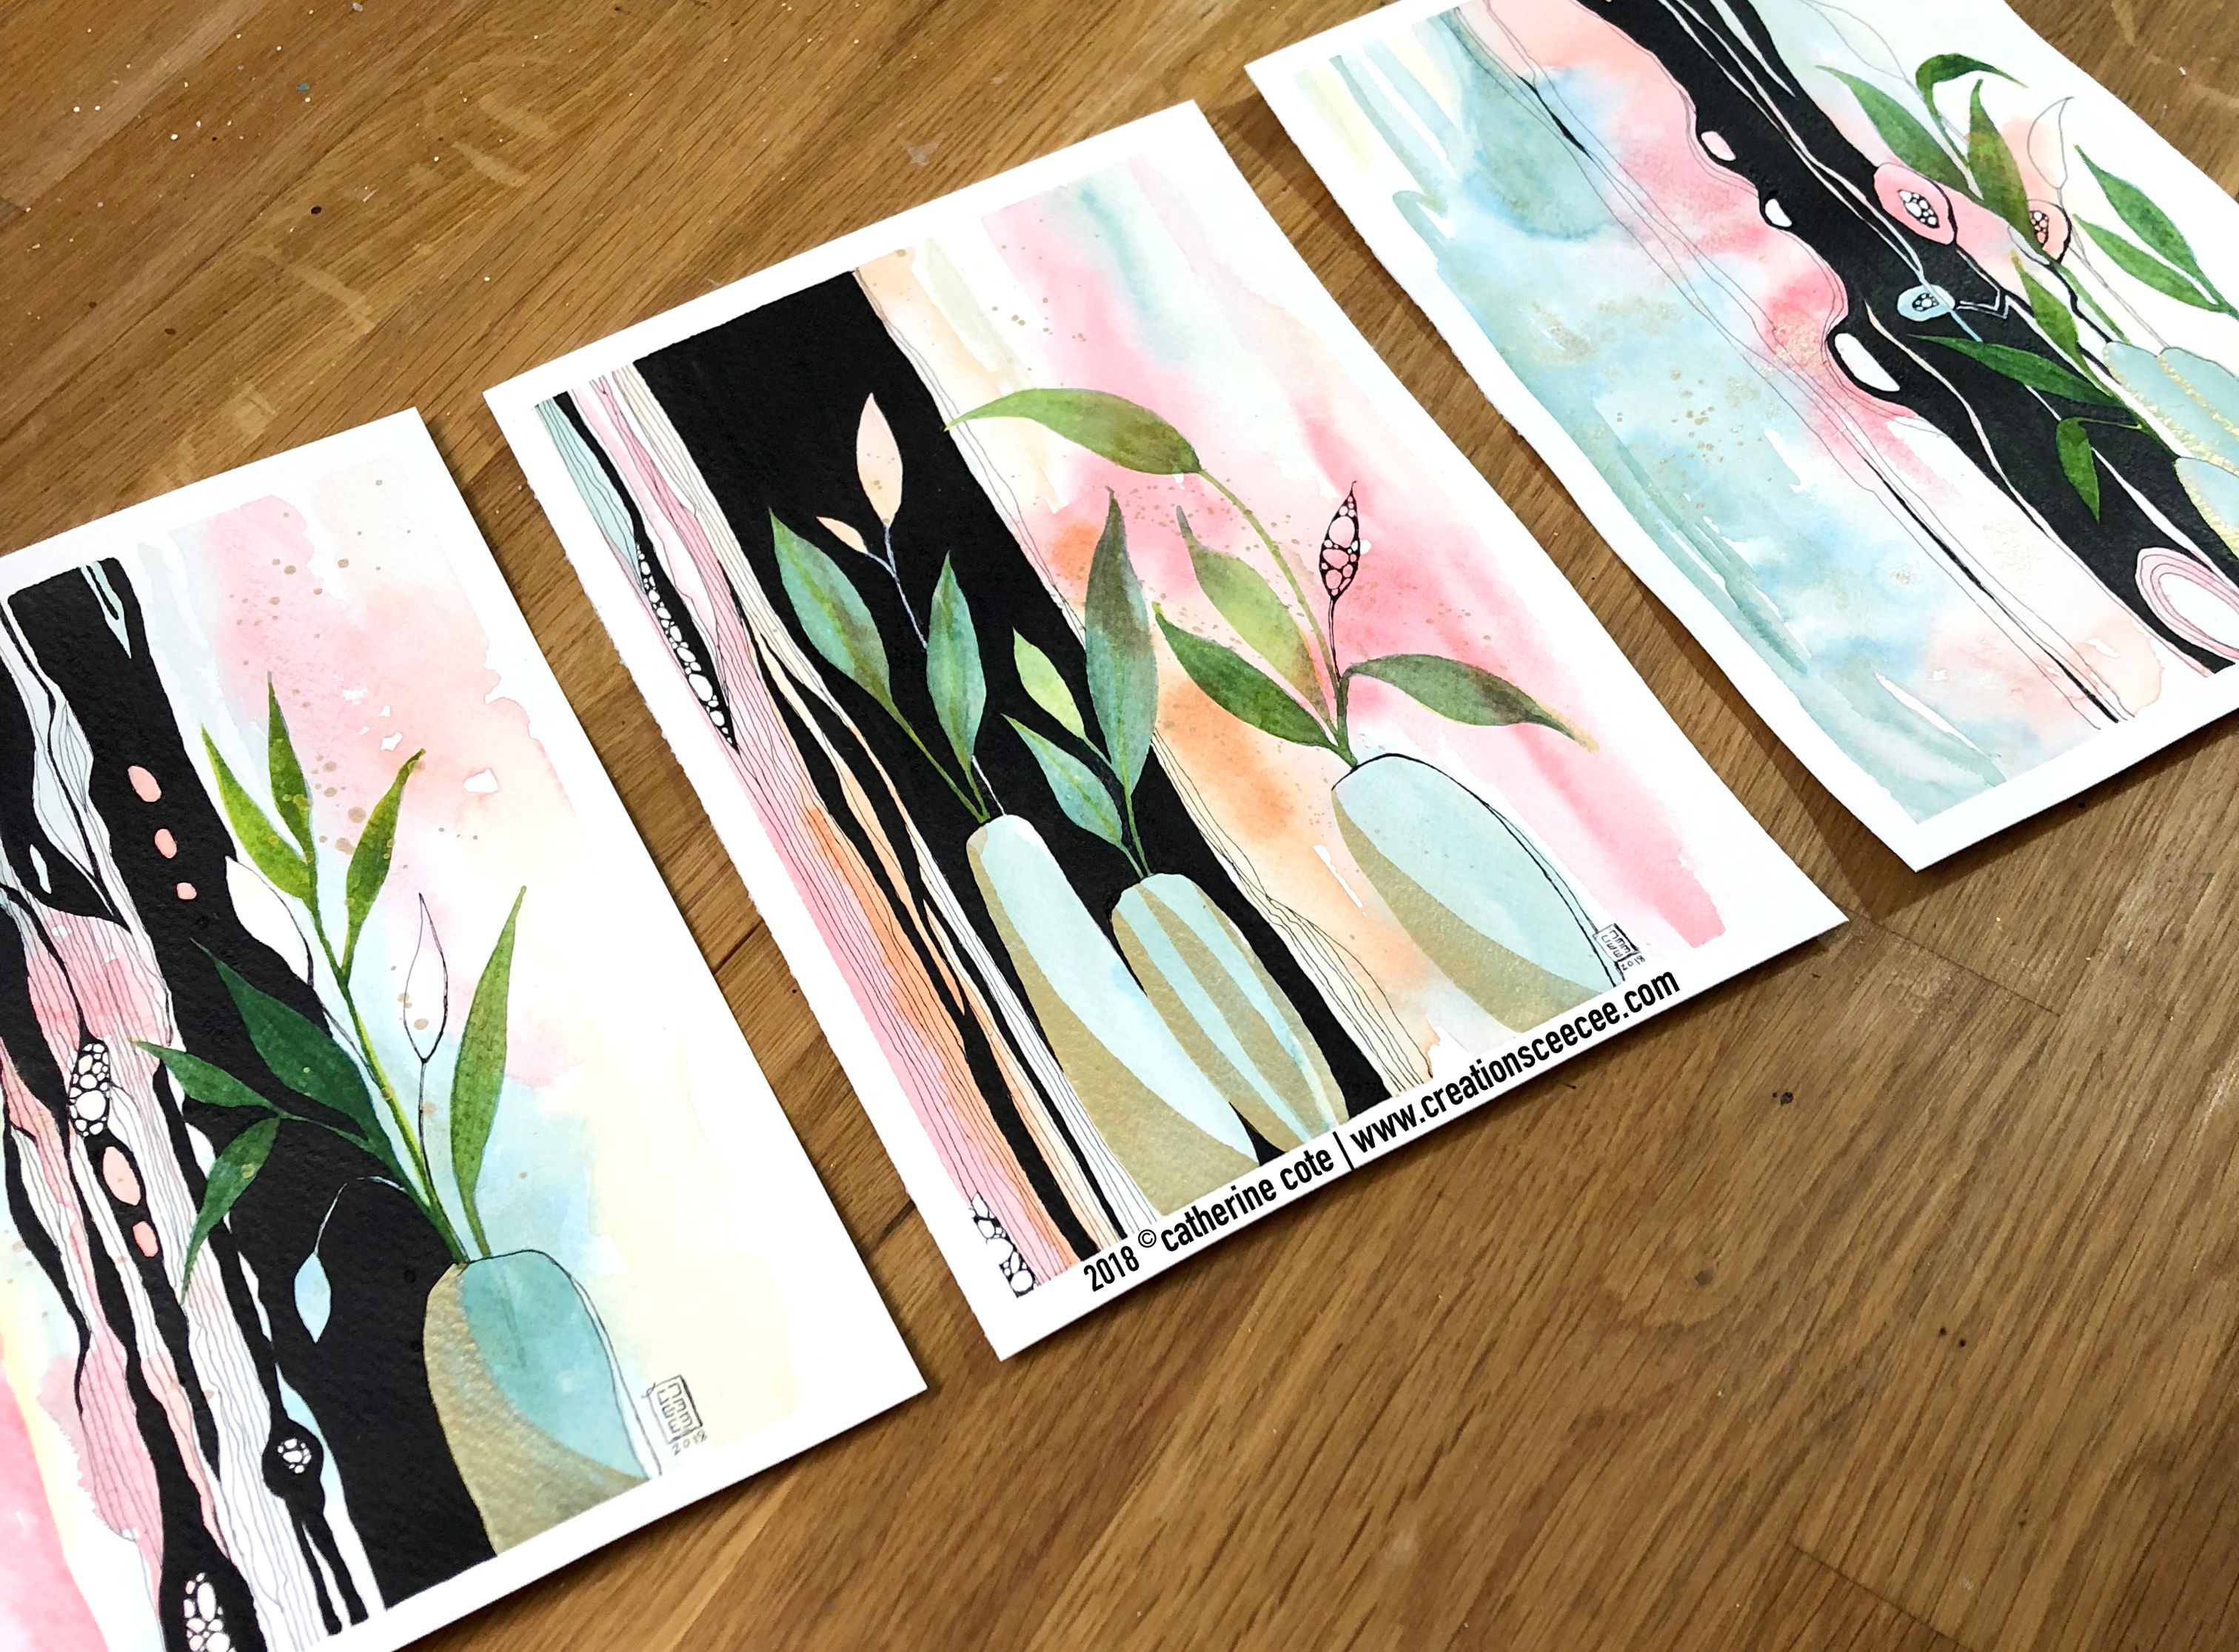 Creations Ceecee Is Creating Watercolor Paintings Acrylic